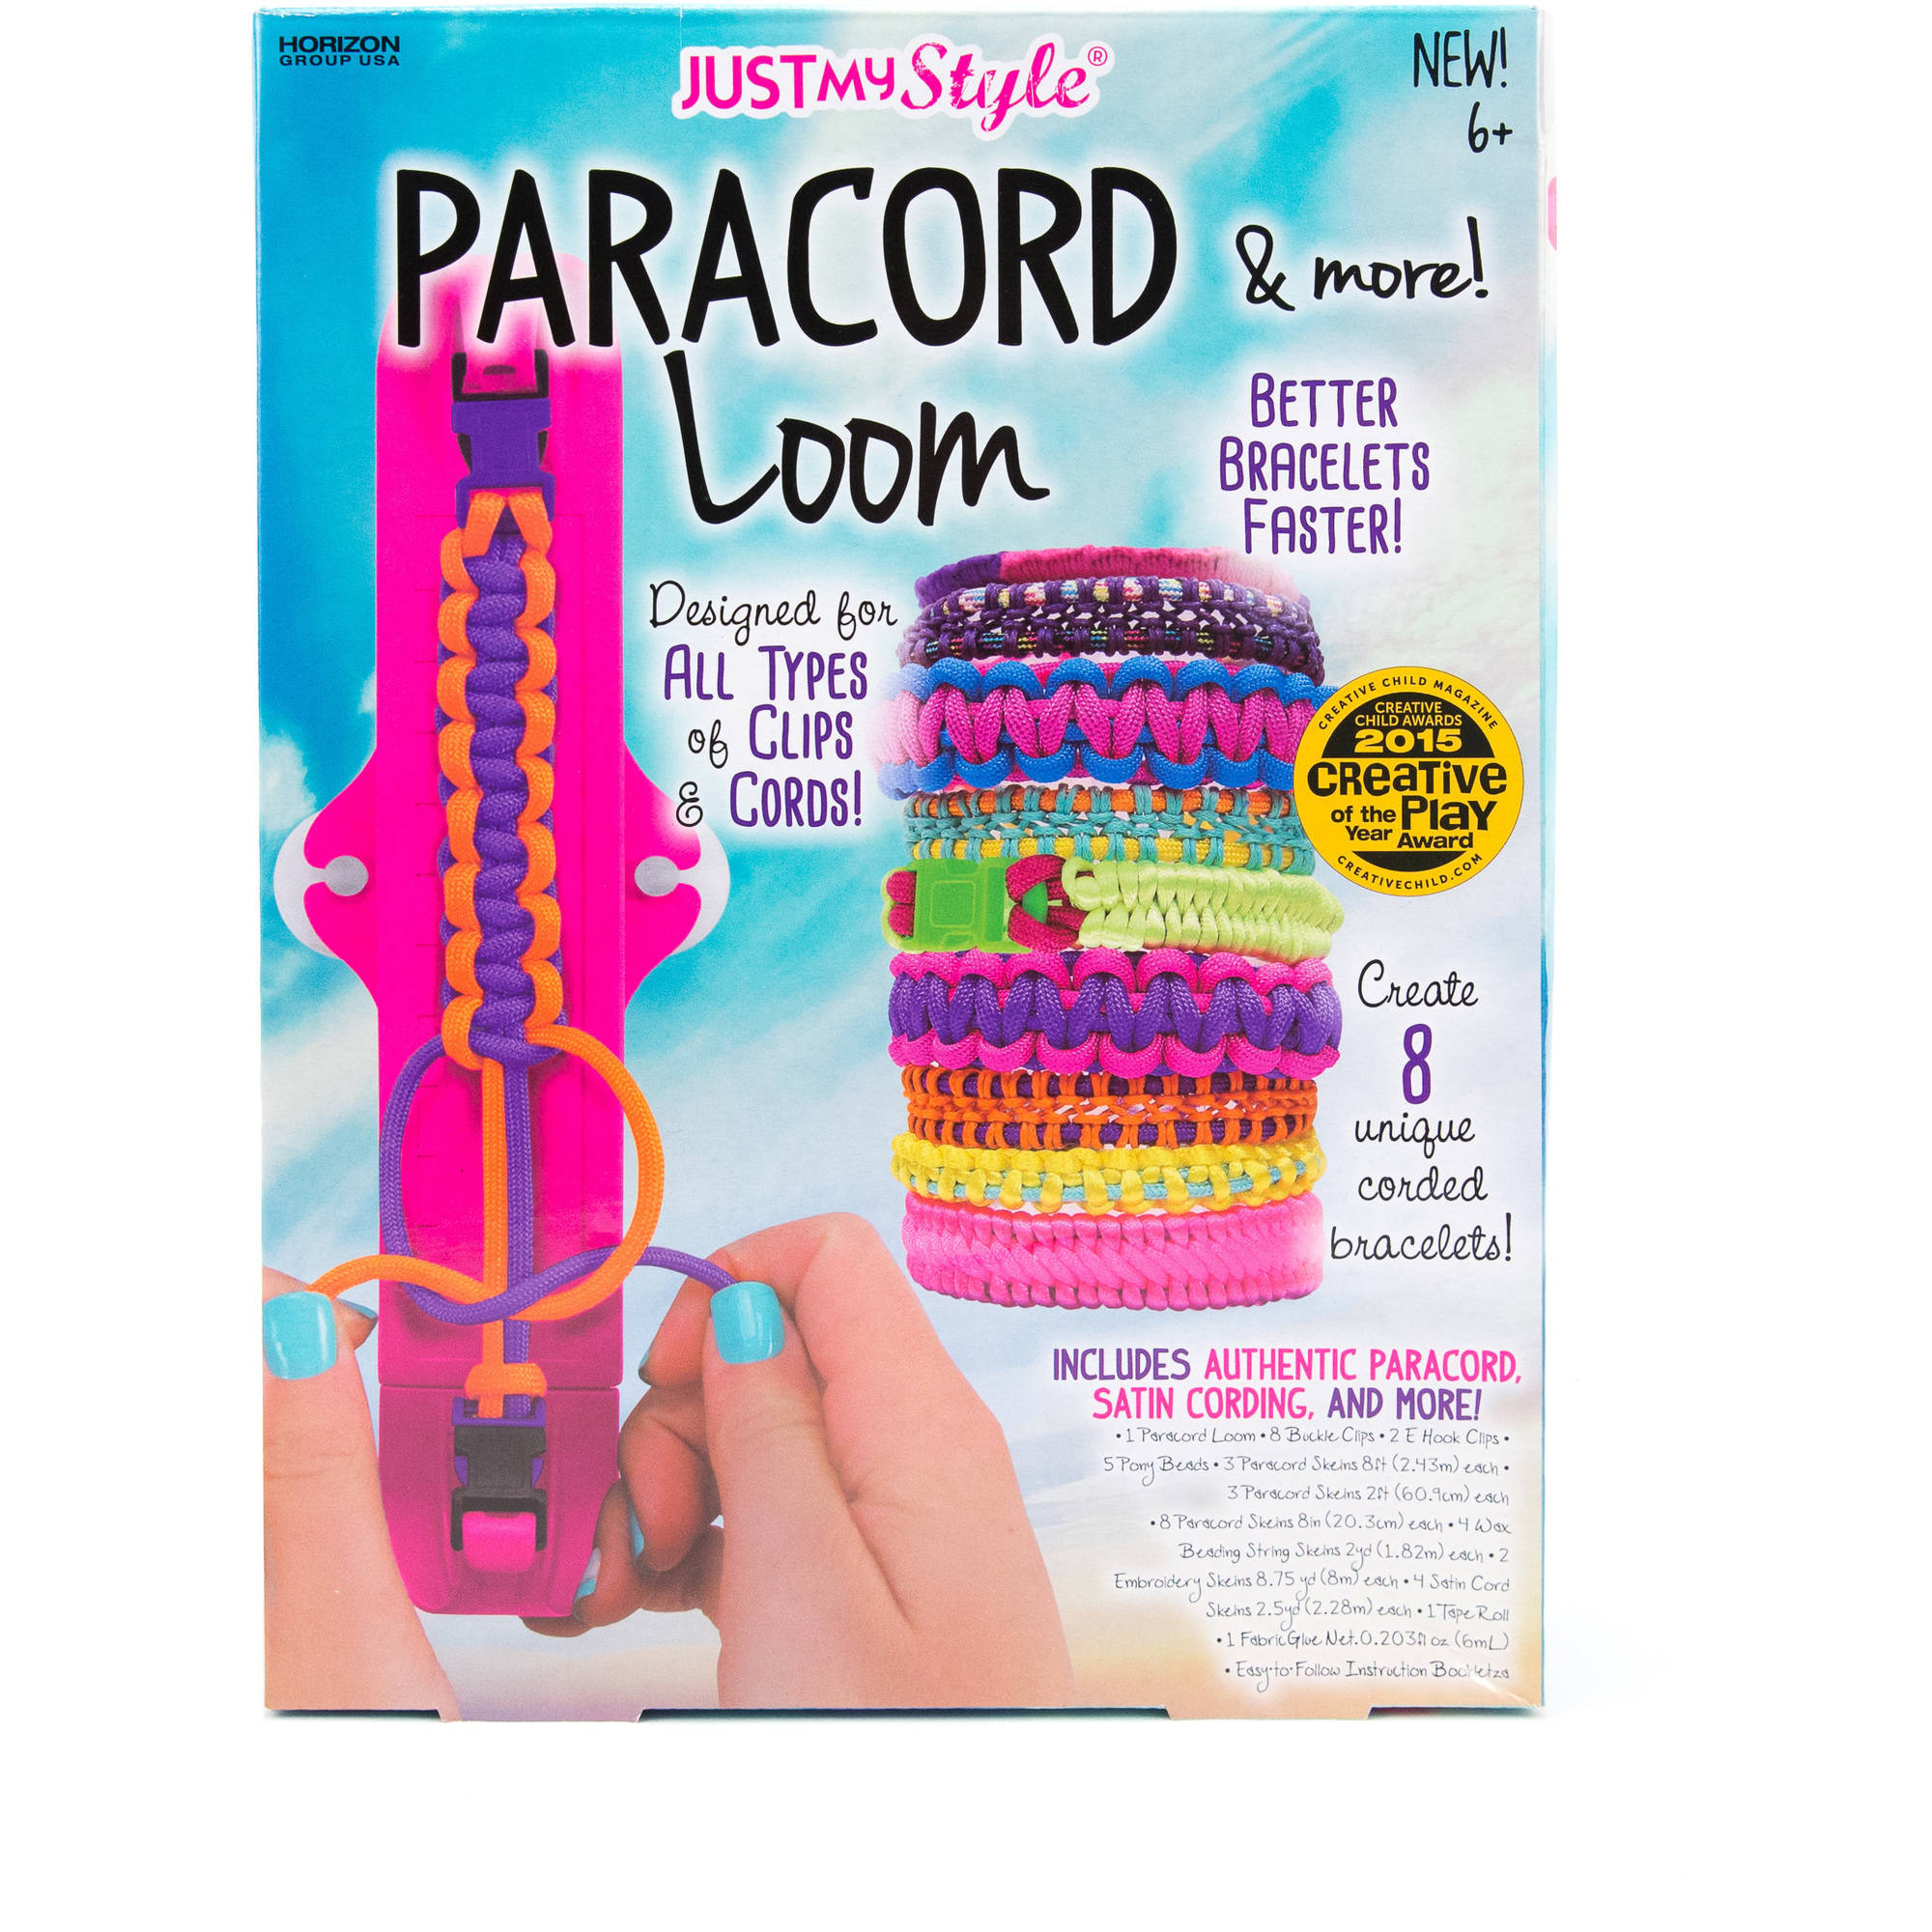 Just My Style Paracord Loom & More by Horizon Group USA